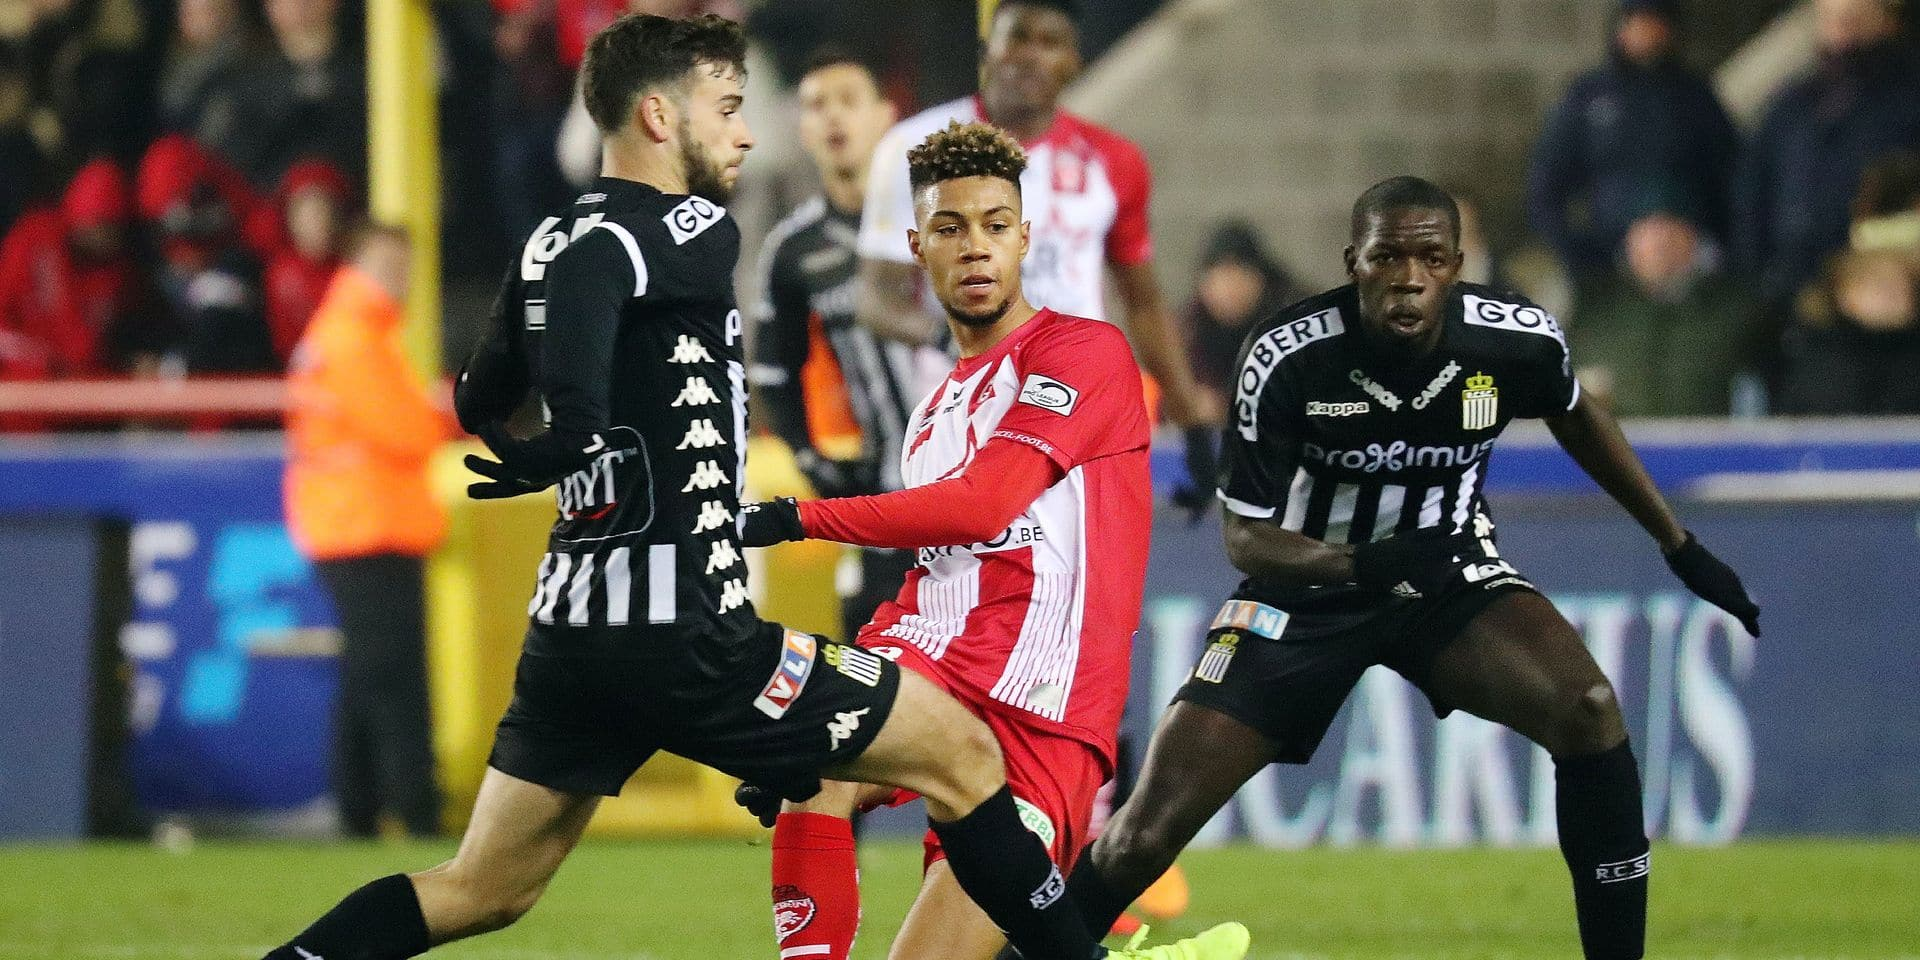 Mouscron's Sidney Friede and Charleroi's Cristophe Diandy fight for the ball during a soccer match between Royal Excel Mouscron and Sporting Charleroi, Friday 01 February 2019 in Mouscron, on day 24th of the 'Jupiler Pro League' Belgian soccer championship season 2018-2019. BELGA PHOTO VIRGINIE LEFOUR